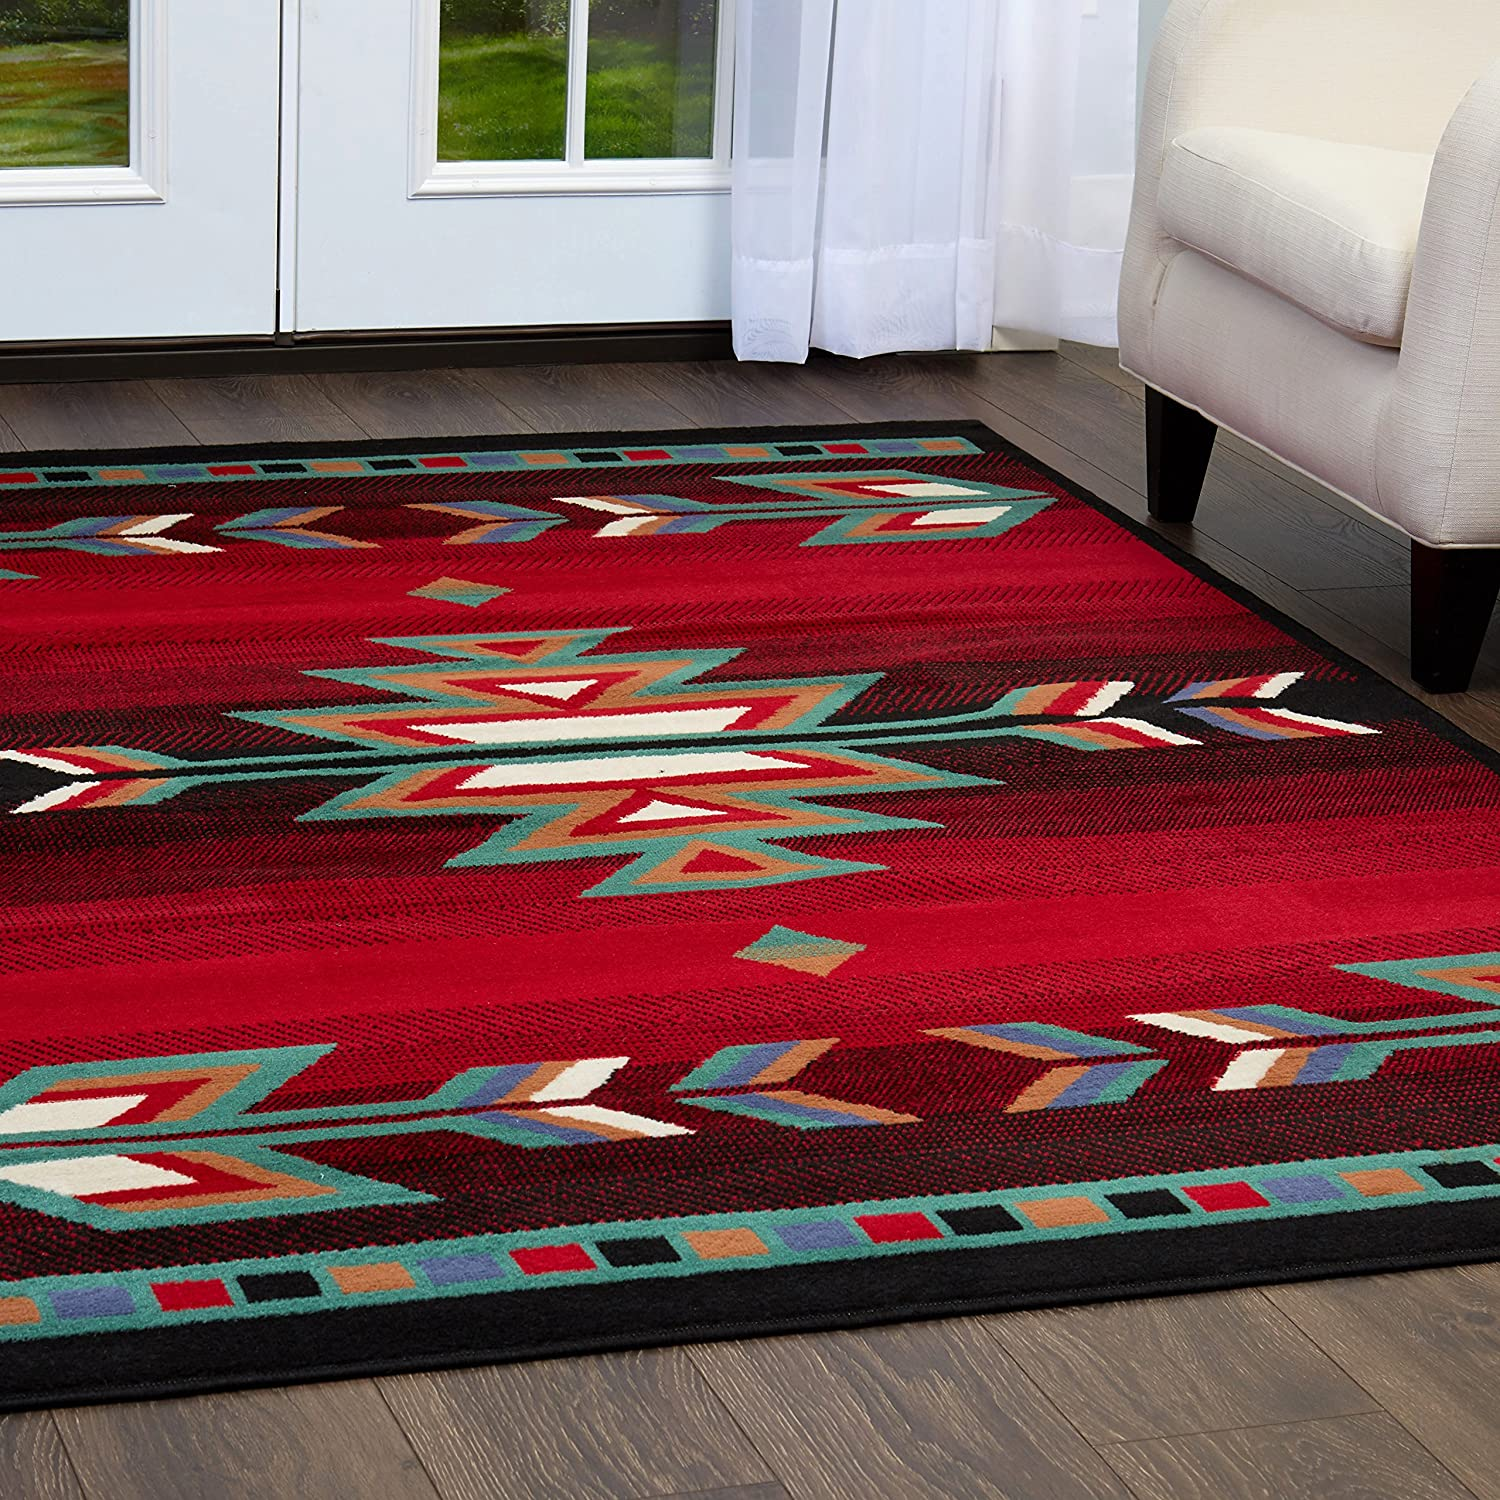 Home Dynamix Sagrada Southwest Area Rug 3x5 Black/Red/Ivory